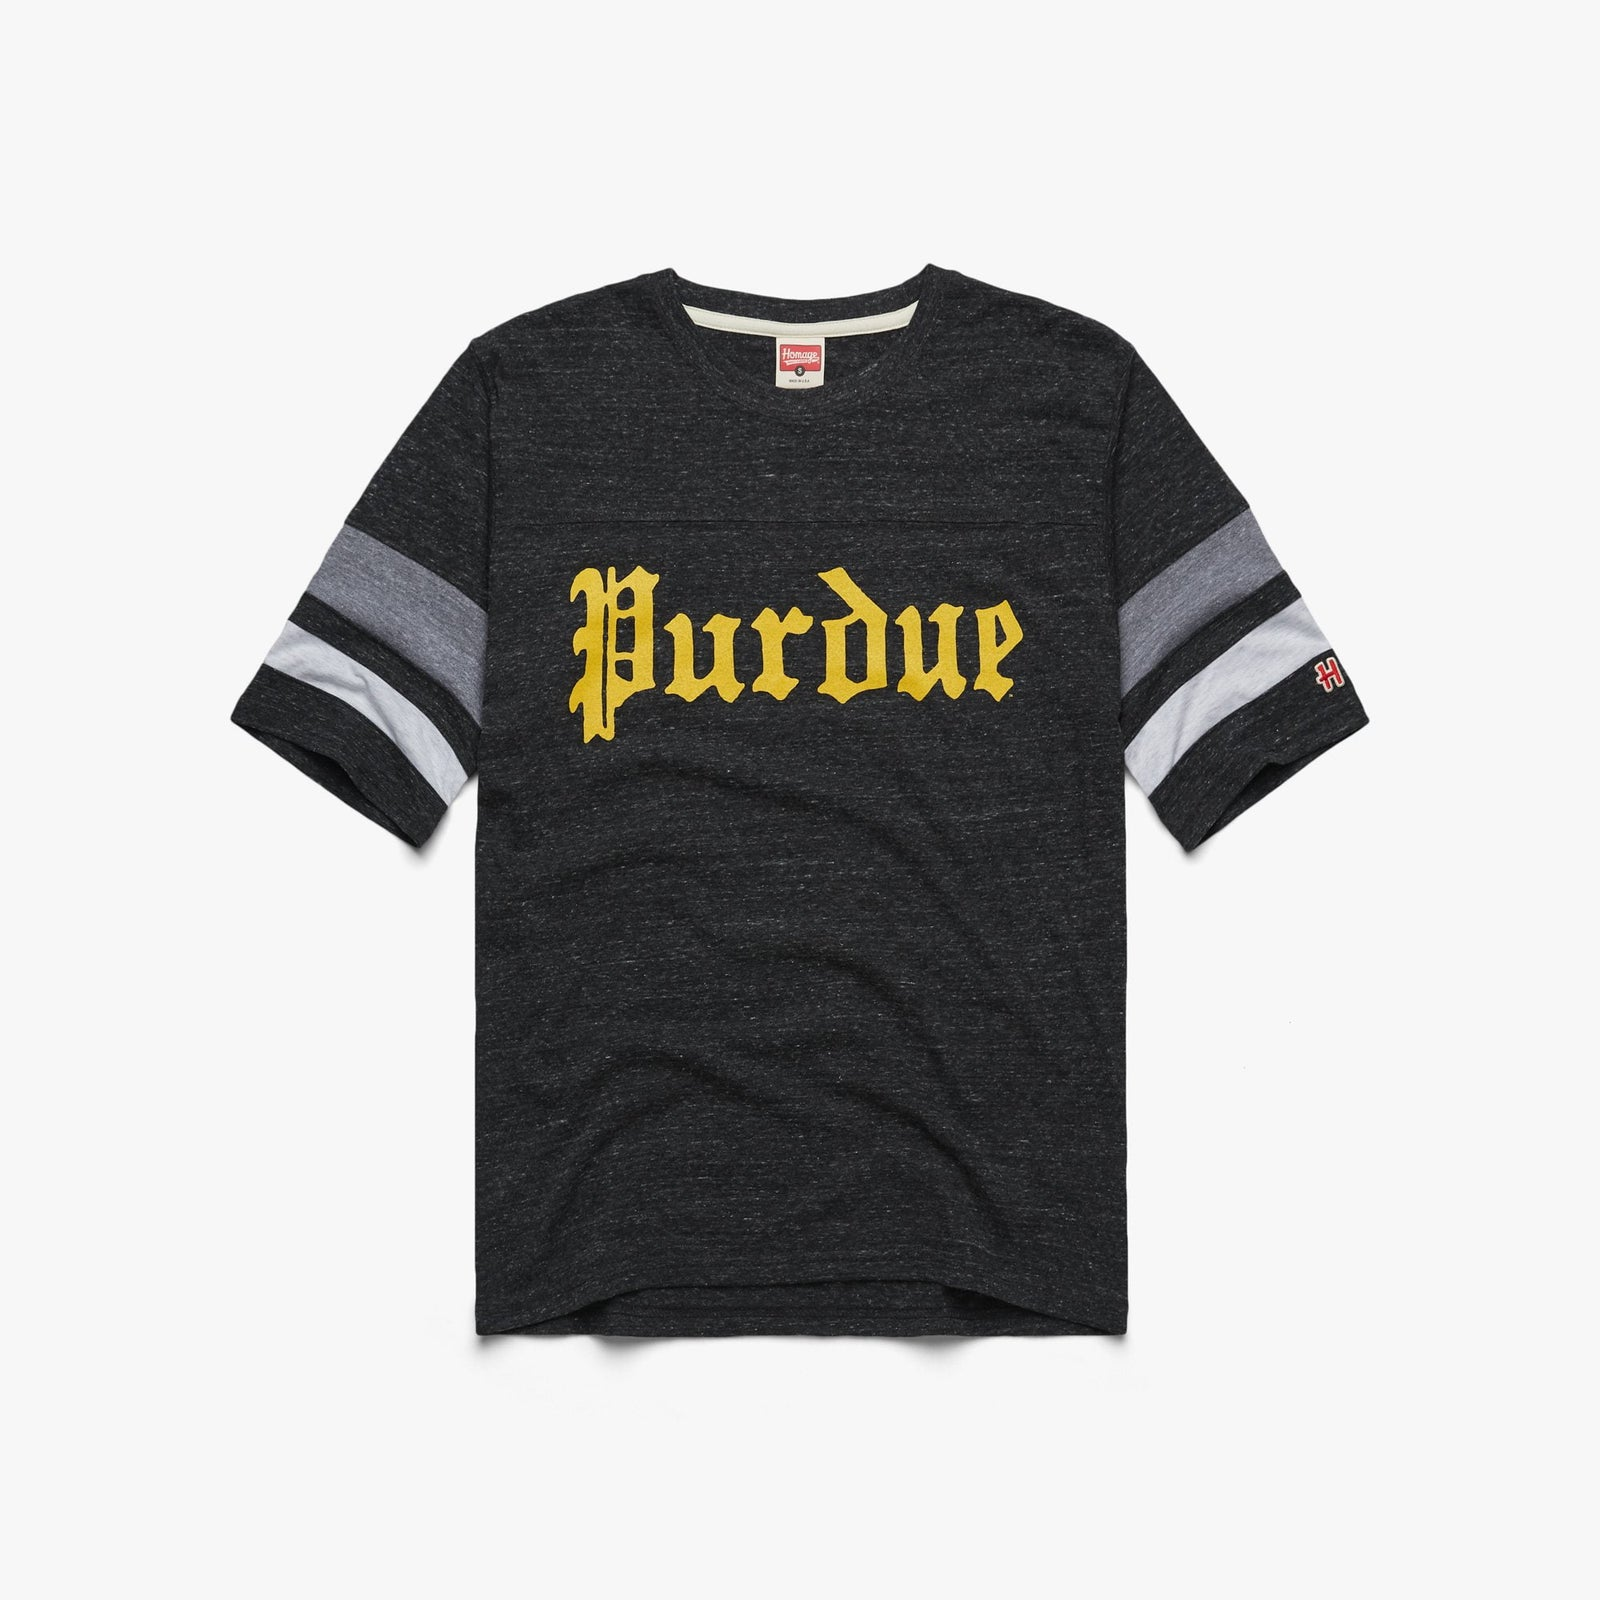 Purdue Olde English Halftime Tee